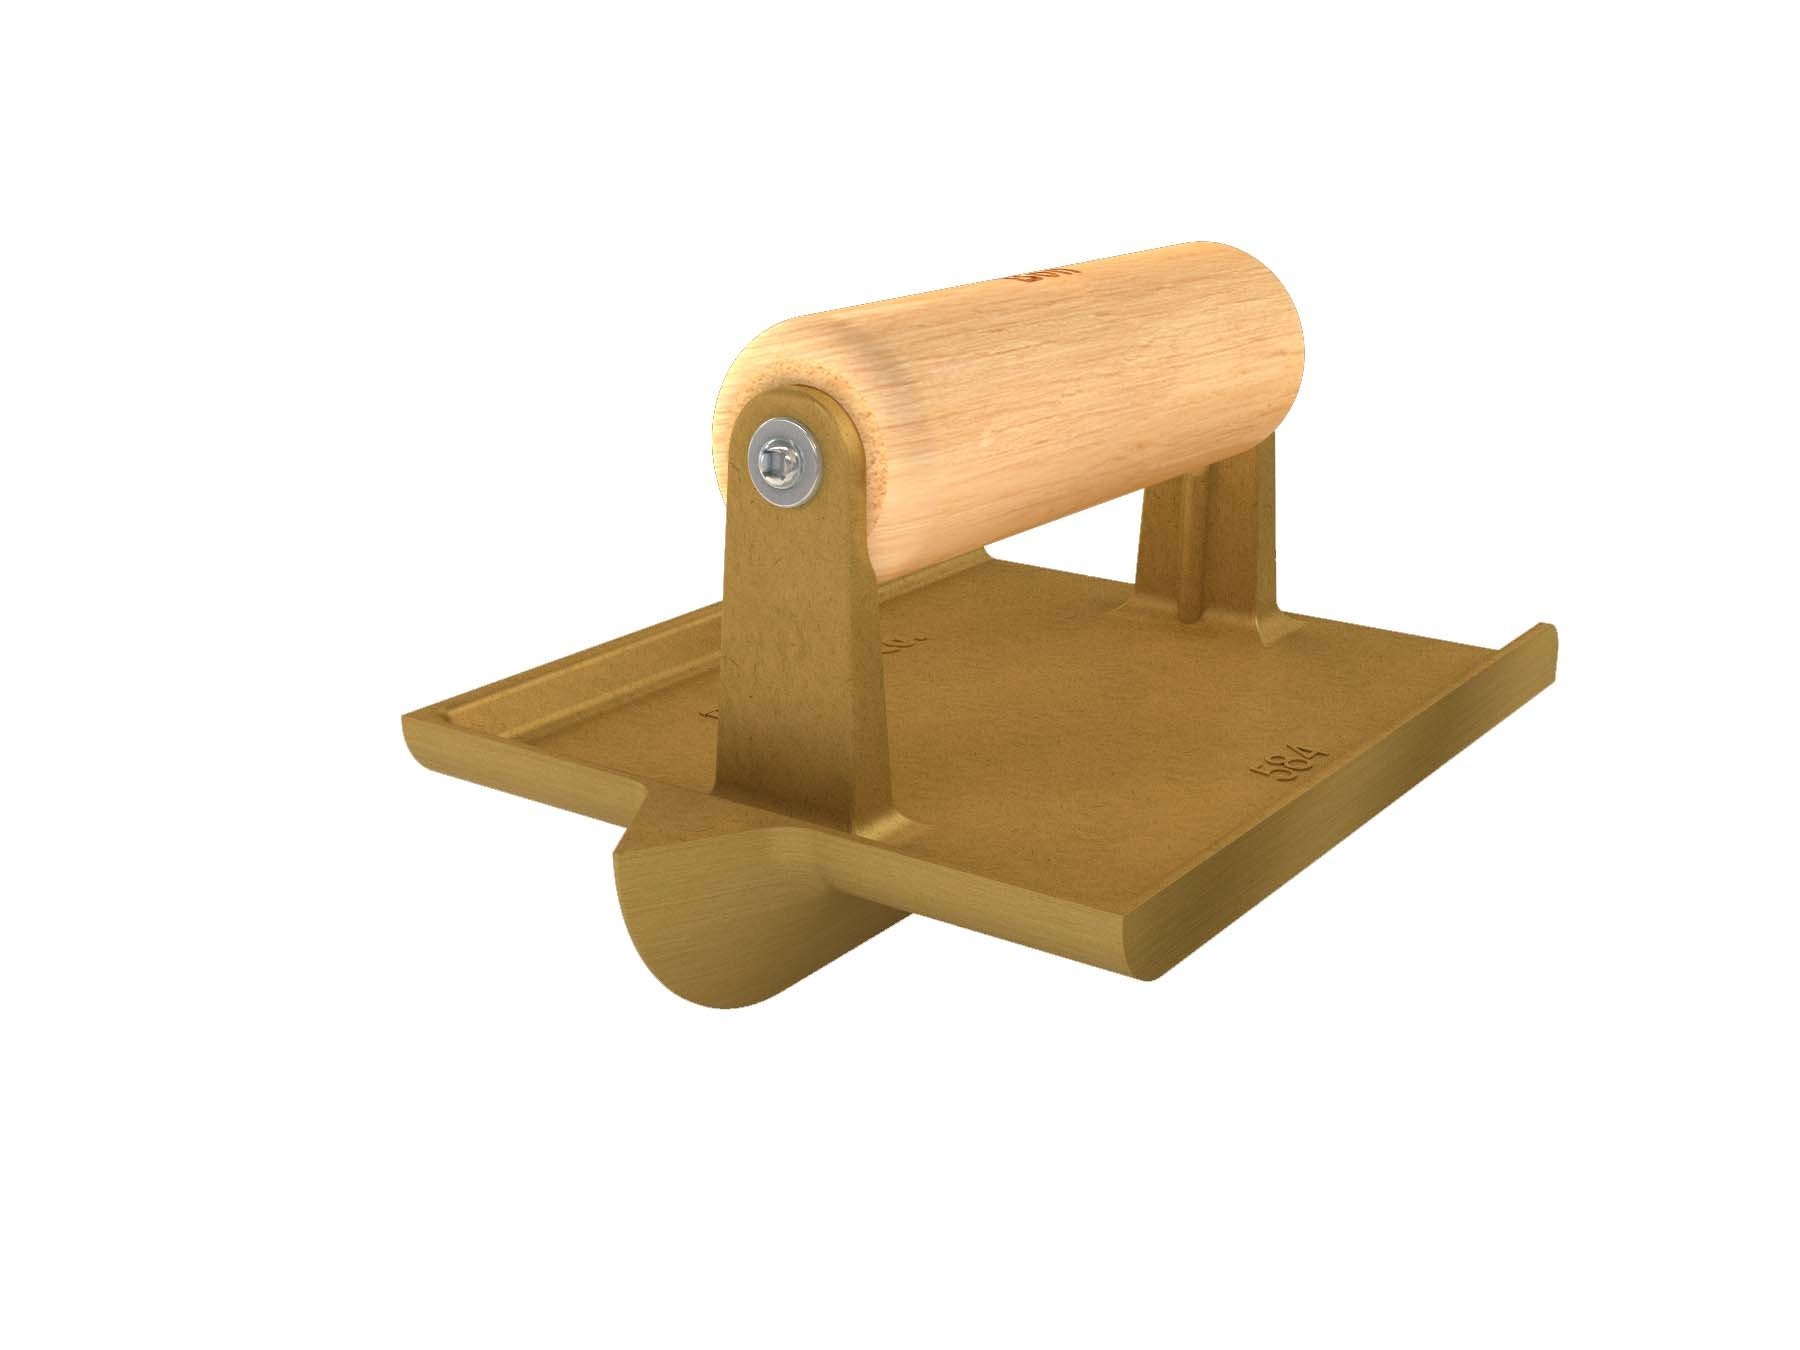 Bon 12-584 6-Inch by 4-1/2-Inch Bronze Hand Concrete Groover with 3/4-Inch Depth by 7/8-Inch Width Bit Wood Handle